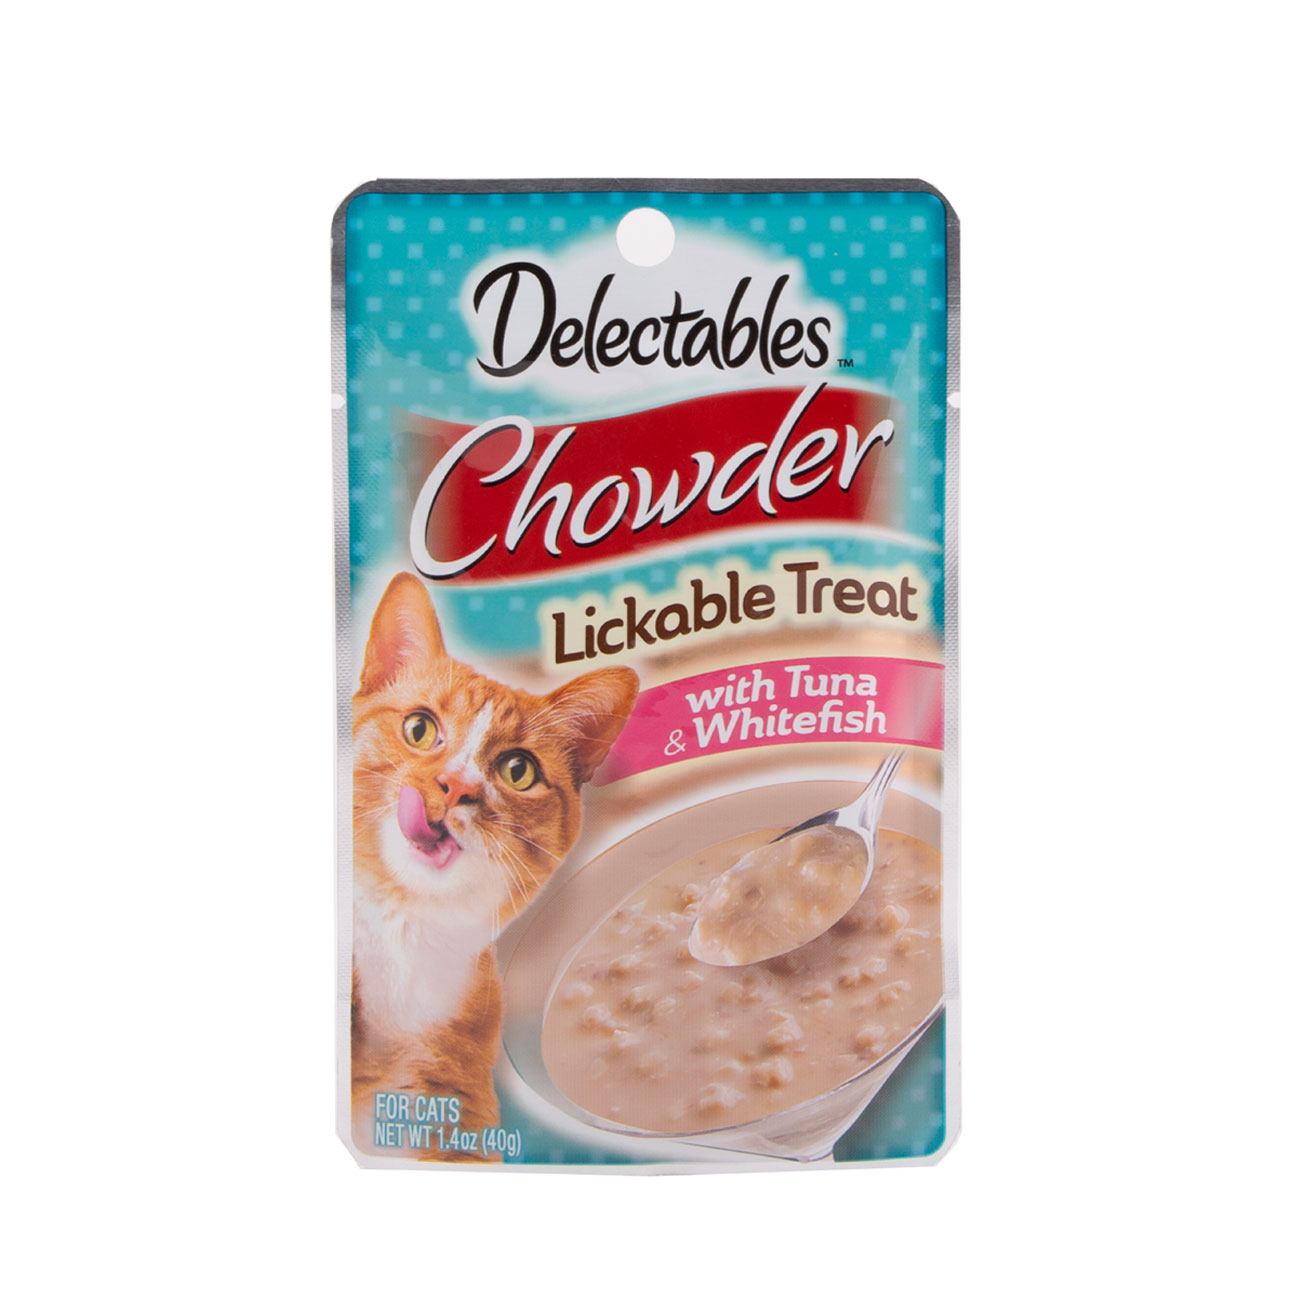 Hartz Delectables™ Lickable Treat chowder. Front of package. The package has a picture of a cat and Hartz Delectables lickable treat chowder.